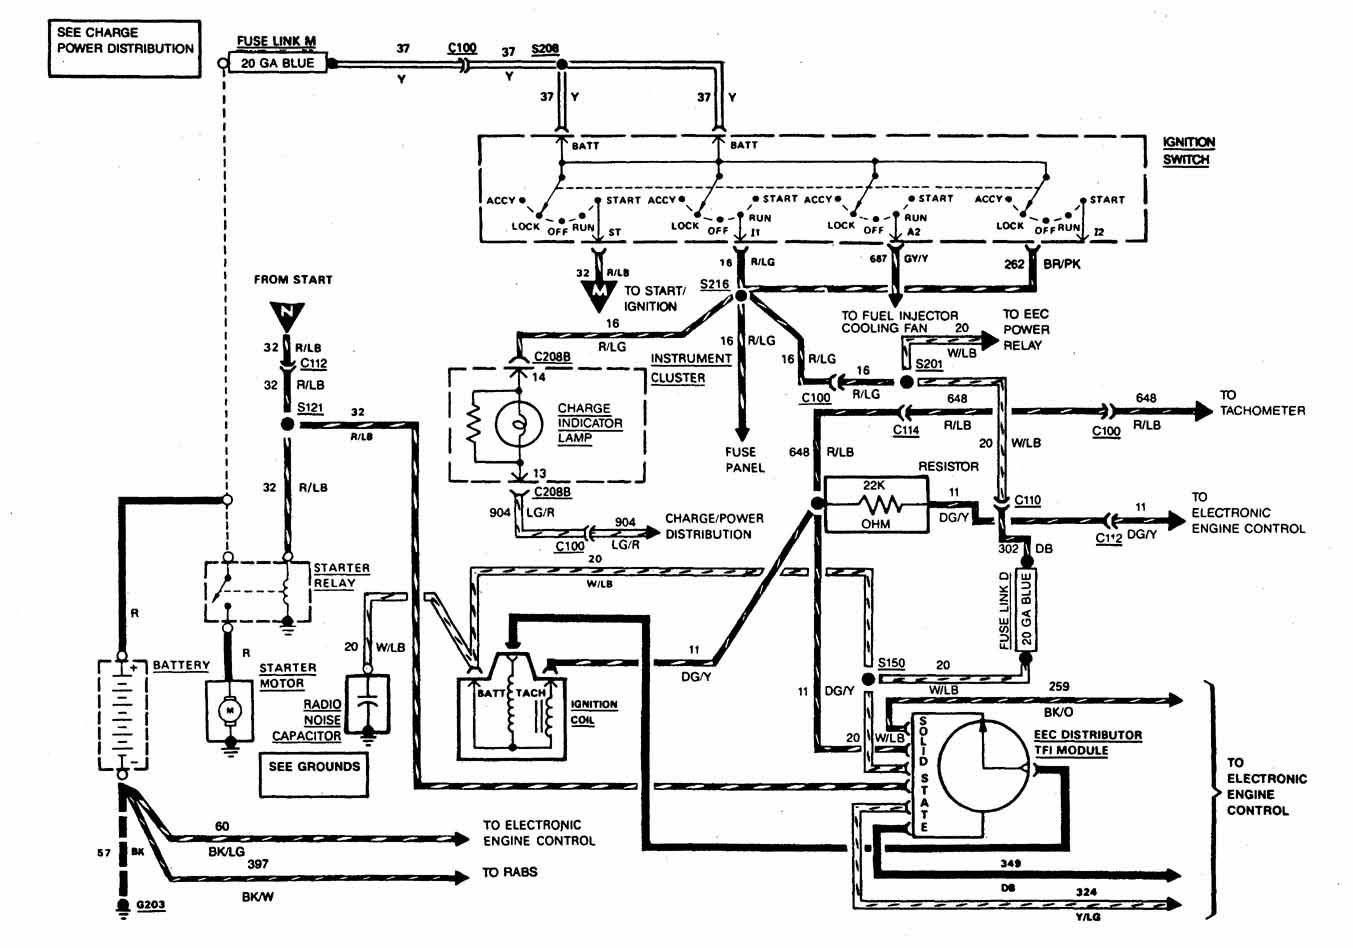 1984 Ford F250 Wiring Diagram Wiring Diagram Appearance A Appearance A Saleebalocchi It